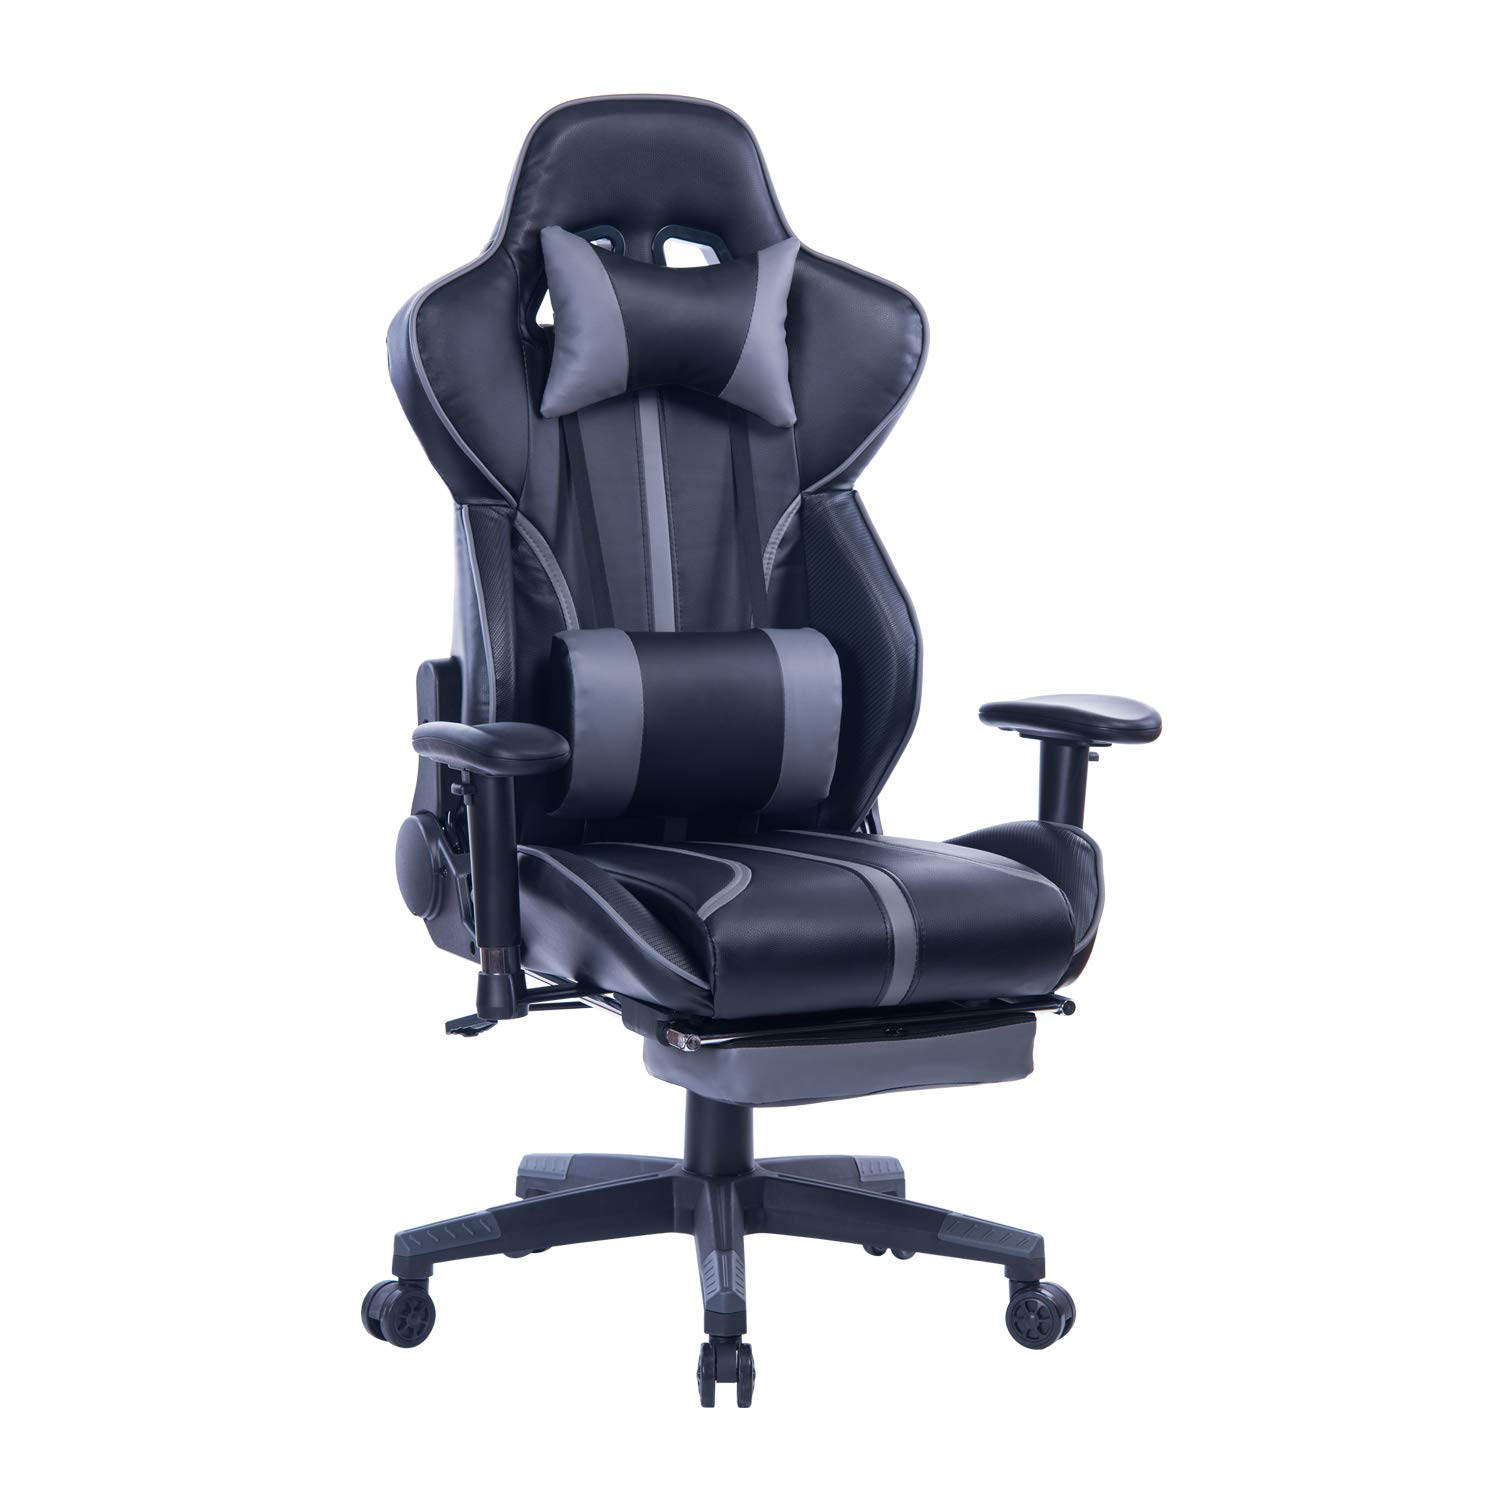 Blue Whale Gaming Chair PC Computer Game Chair with Footrest Racing Gamer Chair Ergonomic Office Chair High-Back PU Leather Computer Desk Chair with Lumbar Cushion and Headrest (8239Grey)